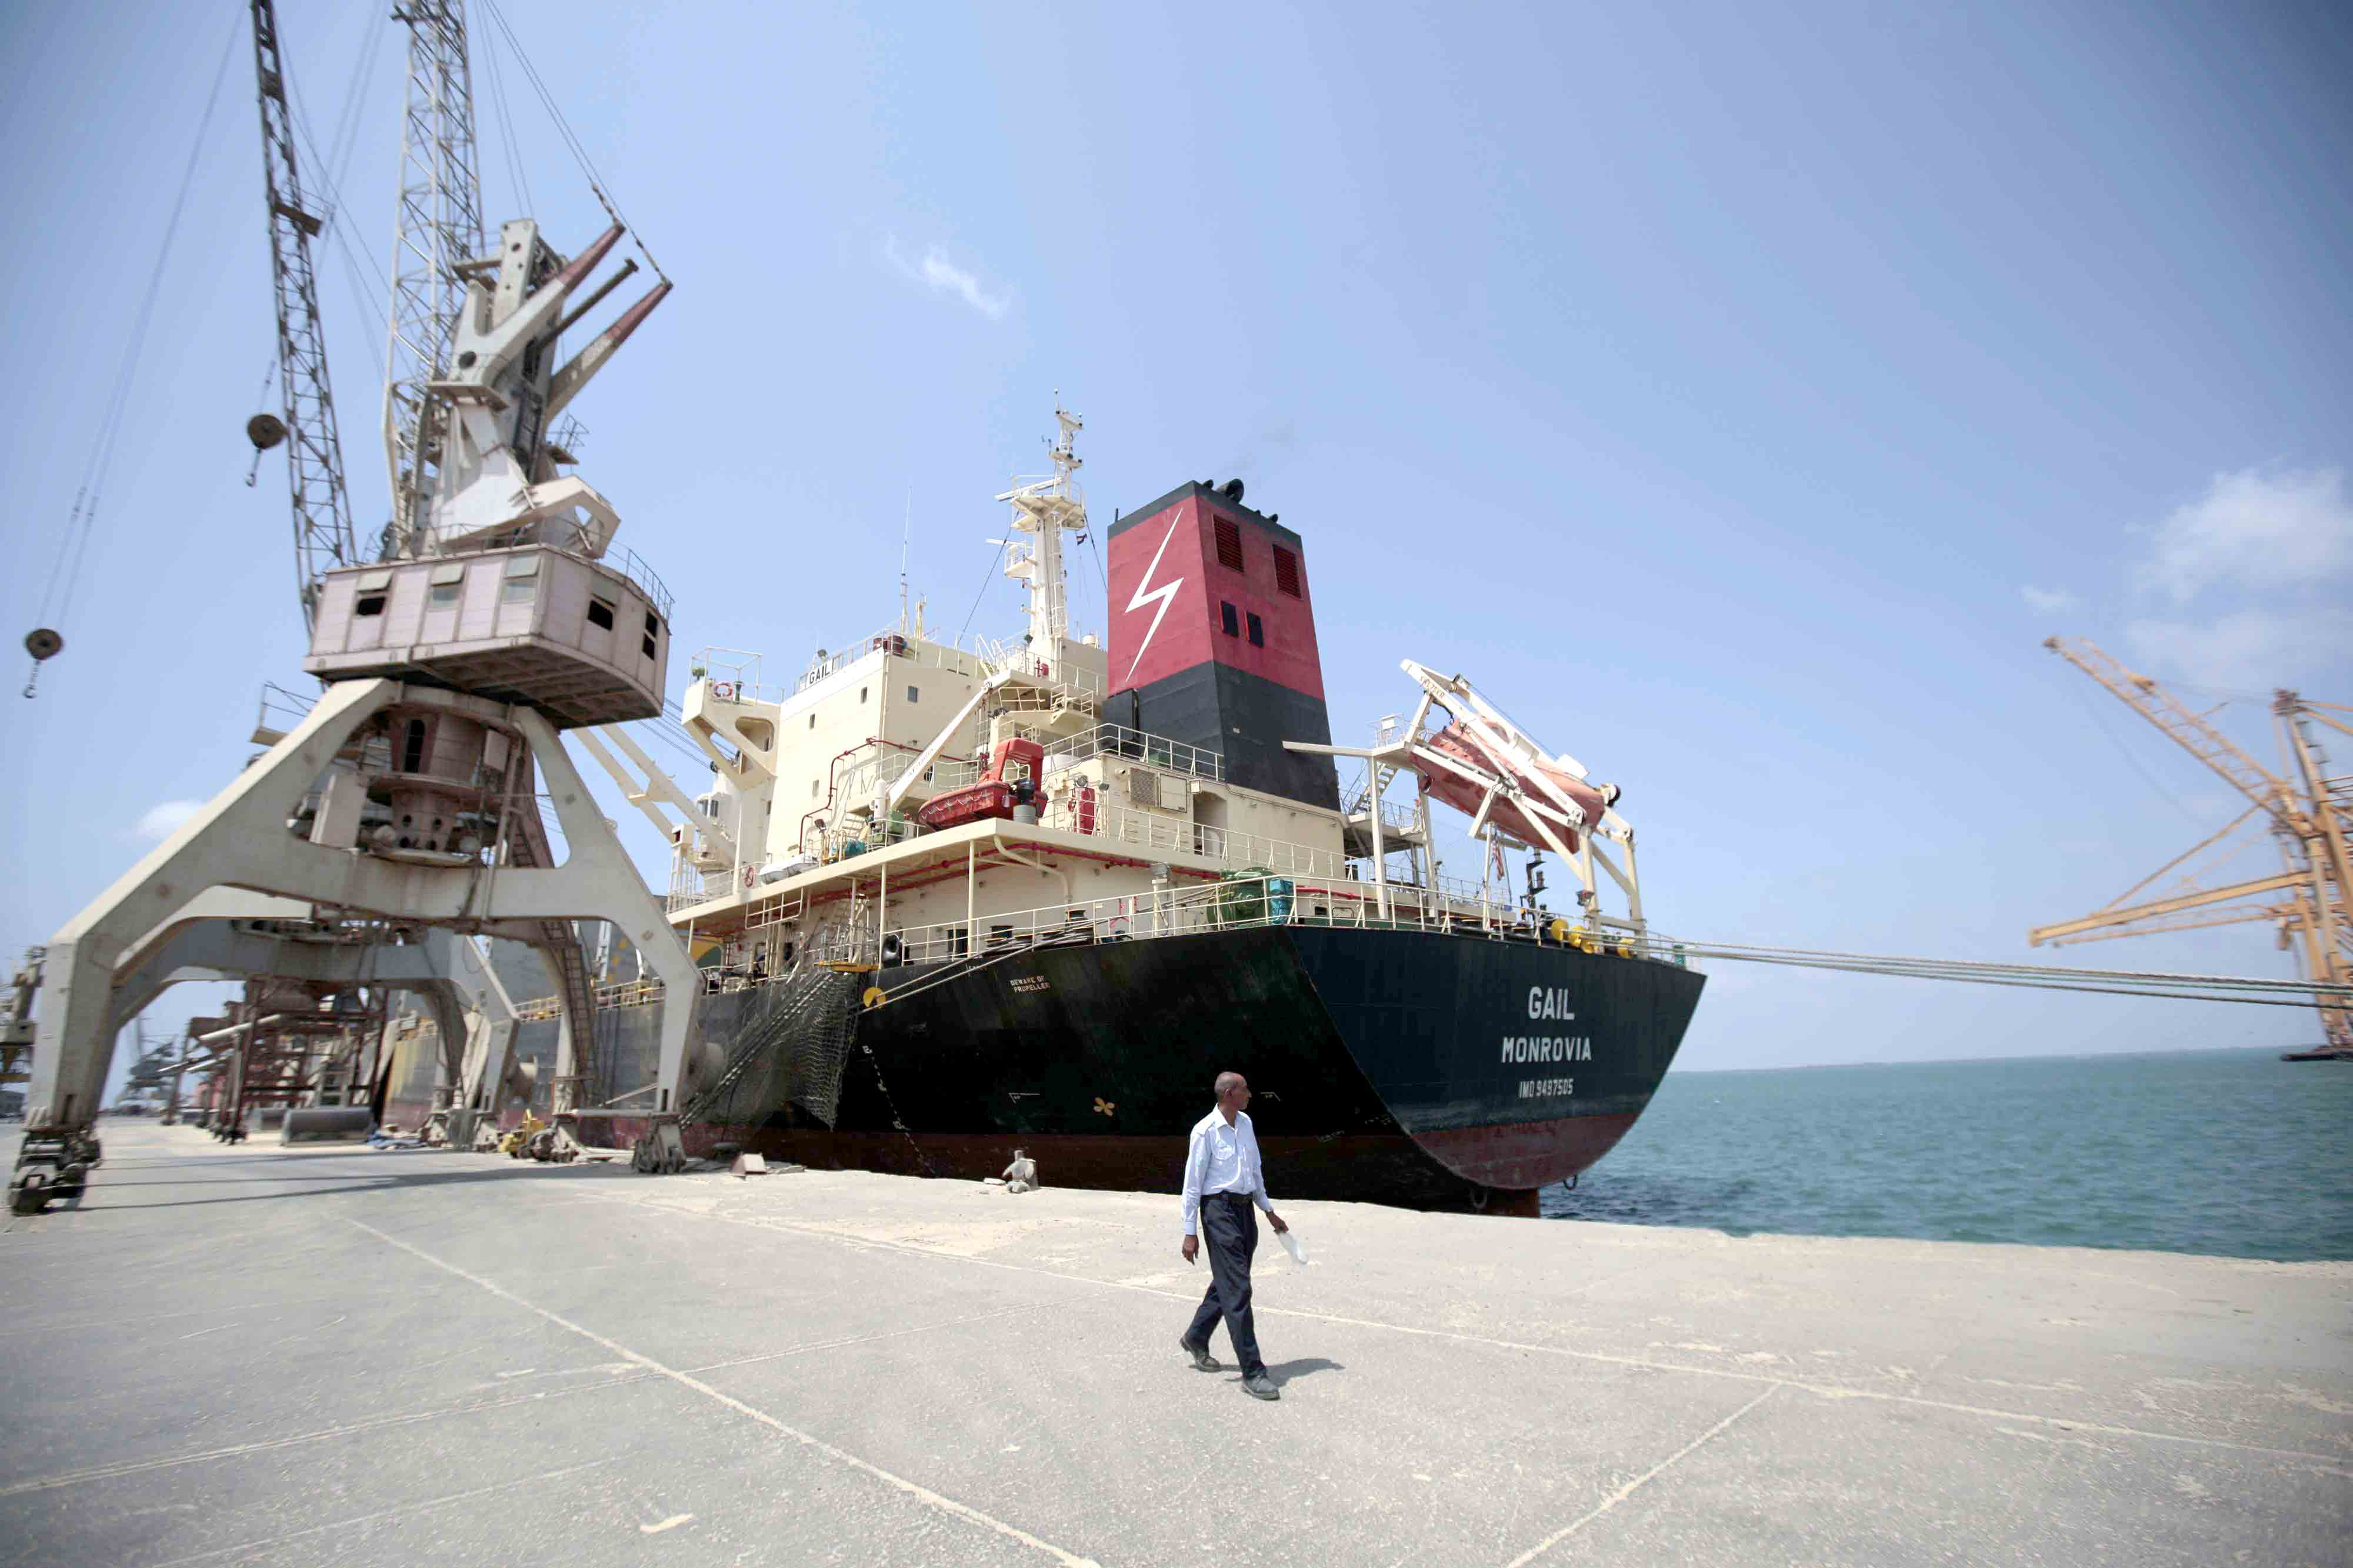 A cargo ship is docked at the port of Hodeidah in Yemen.(AP)